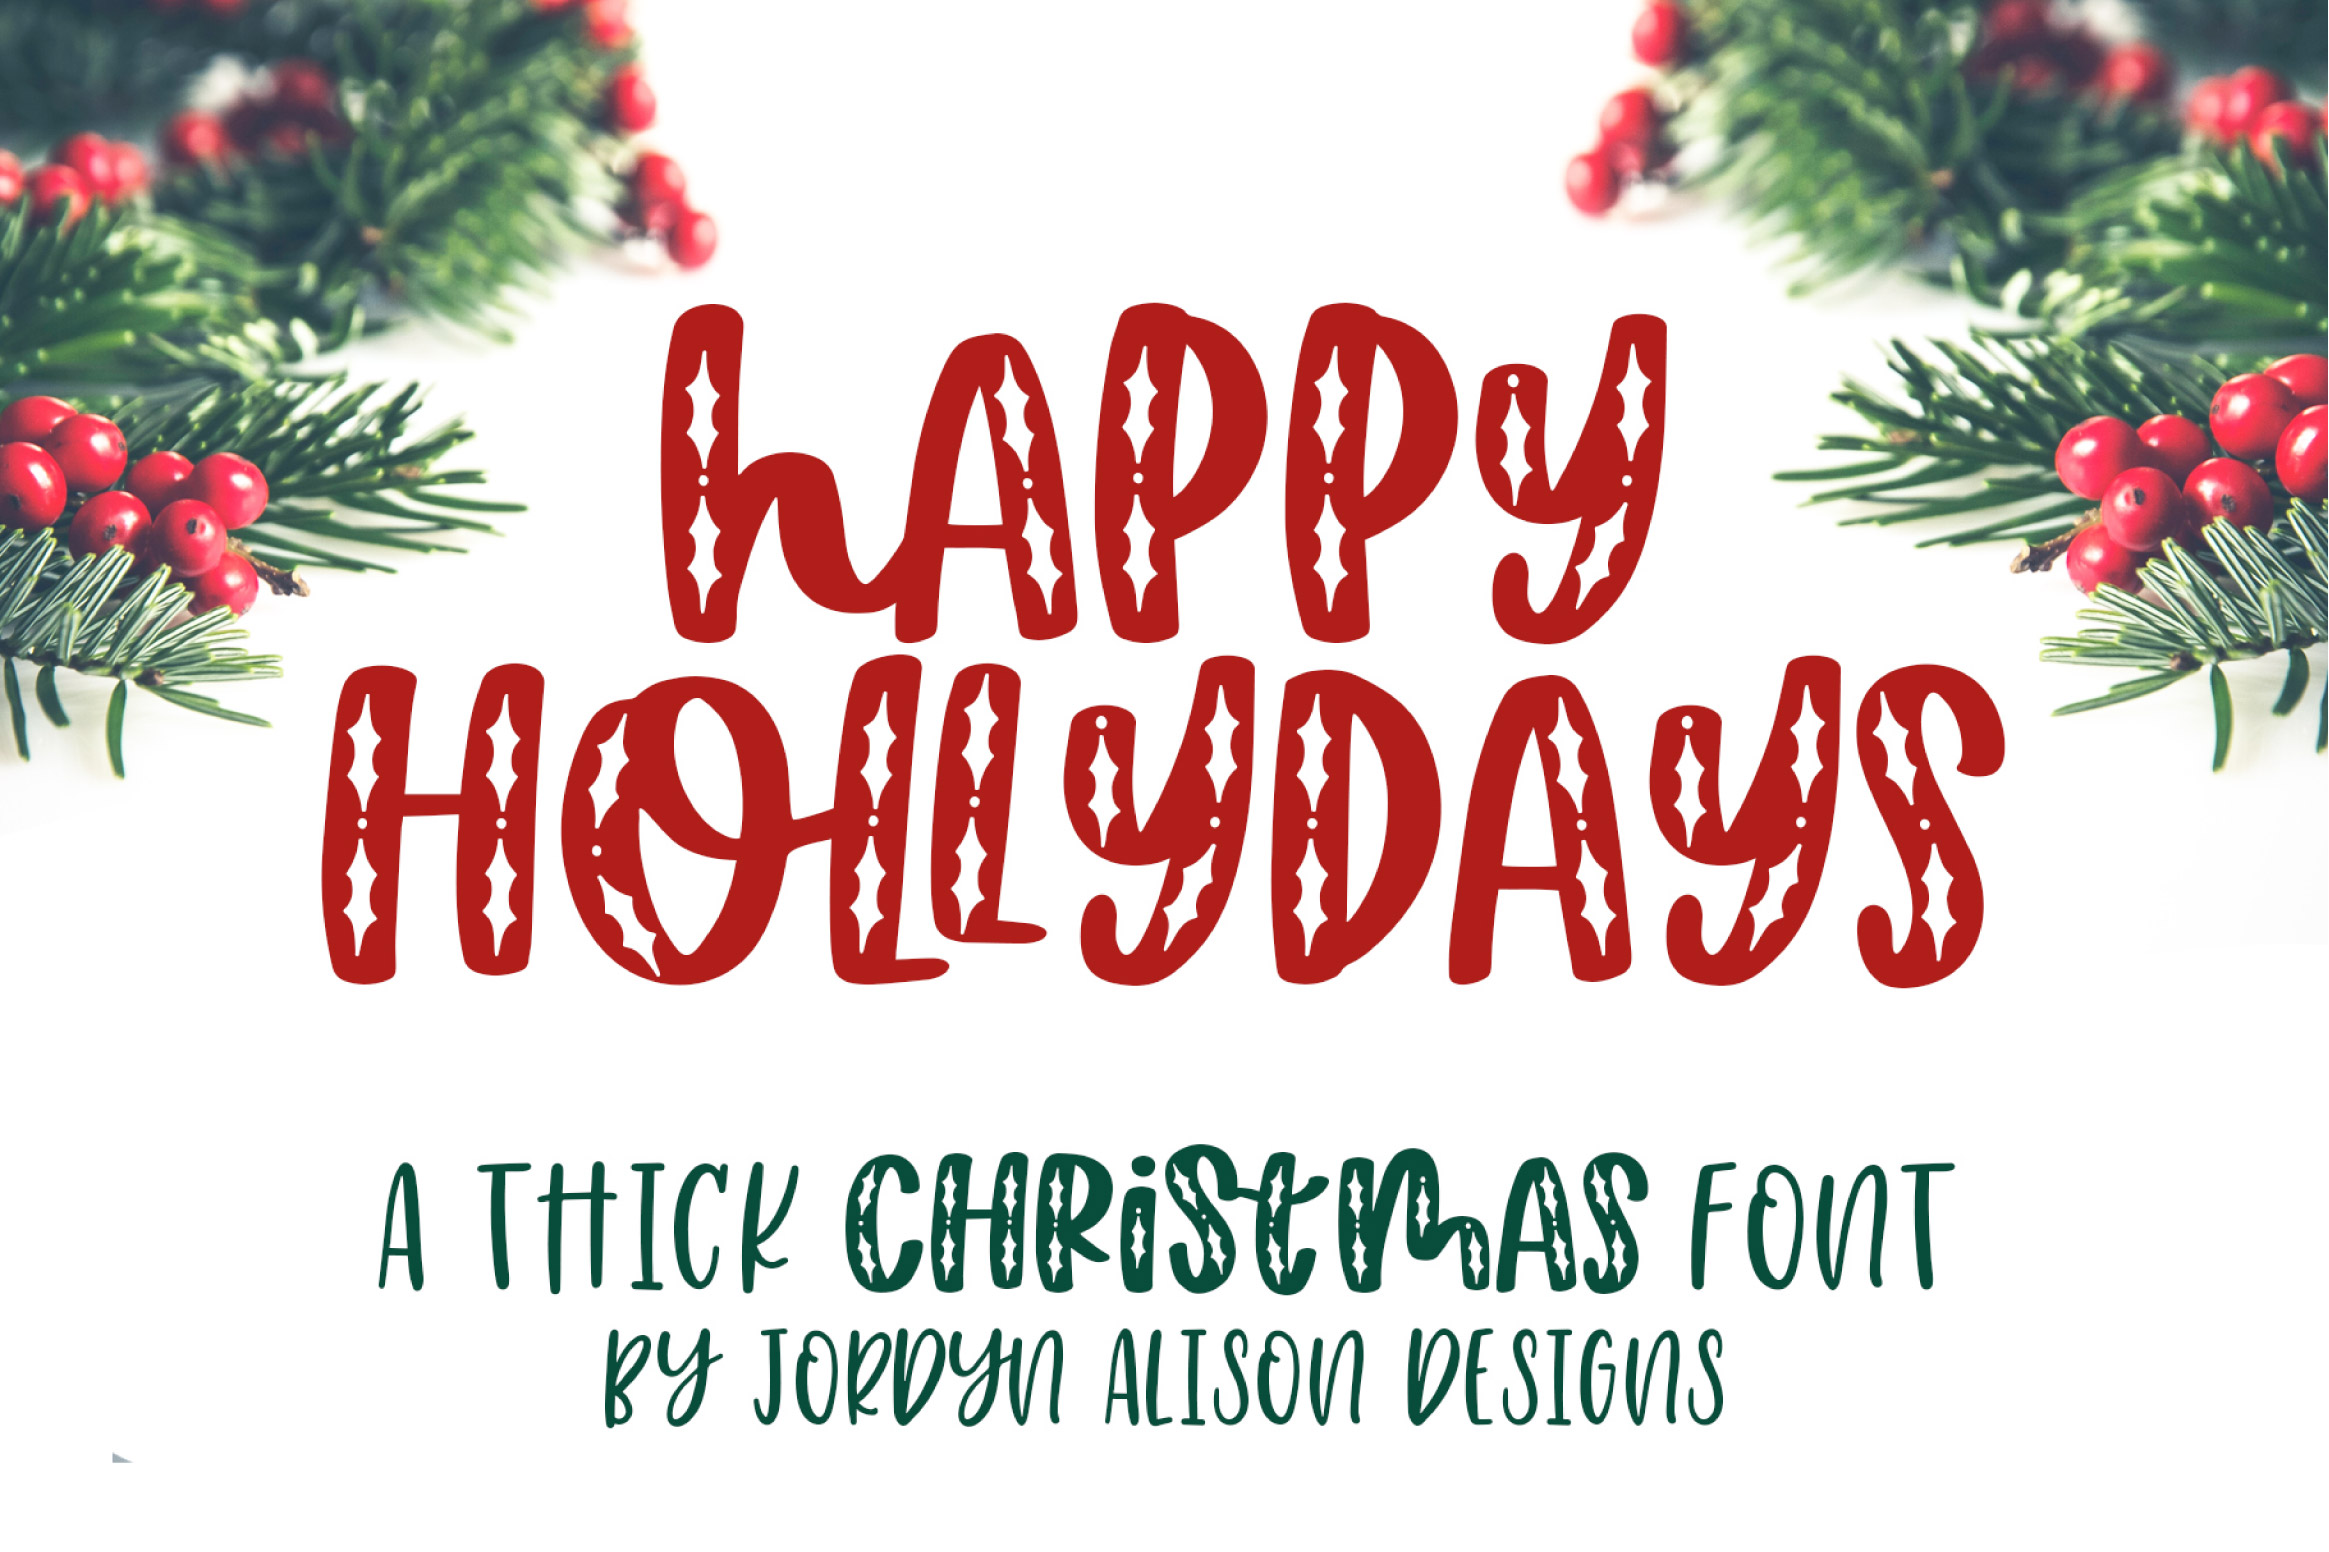 Happy Hollydays by Jordyn Alison Designs